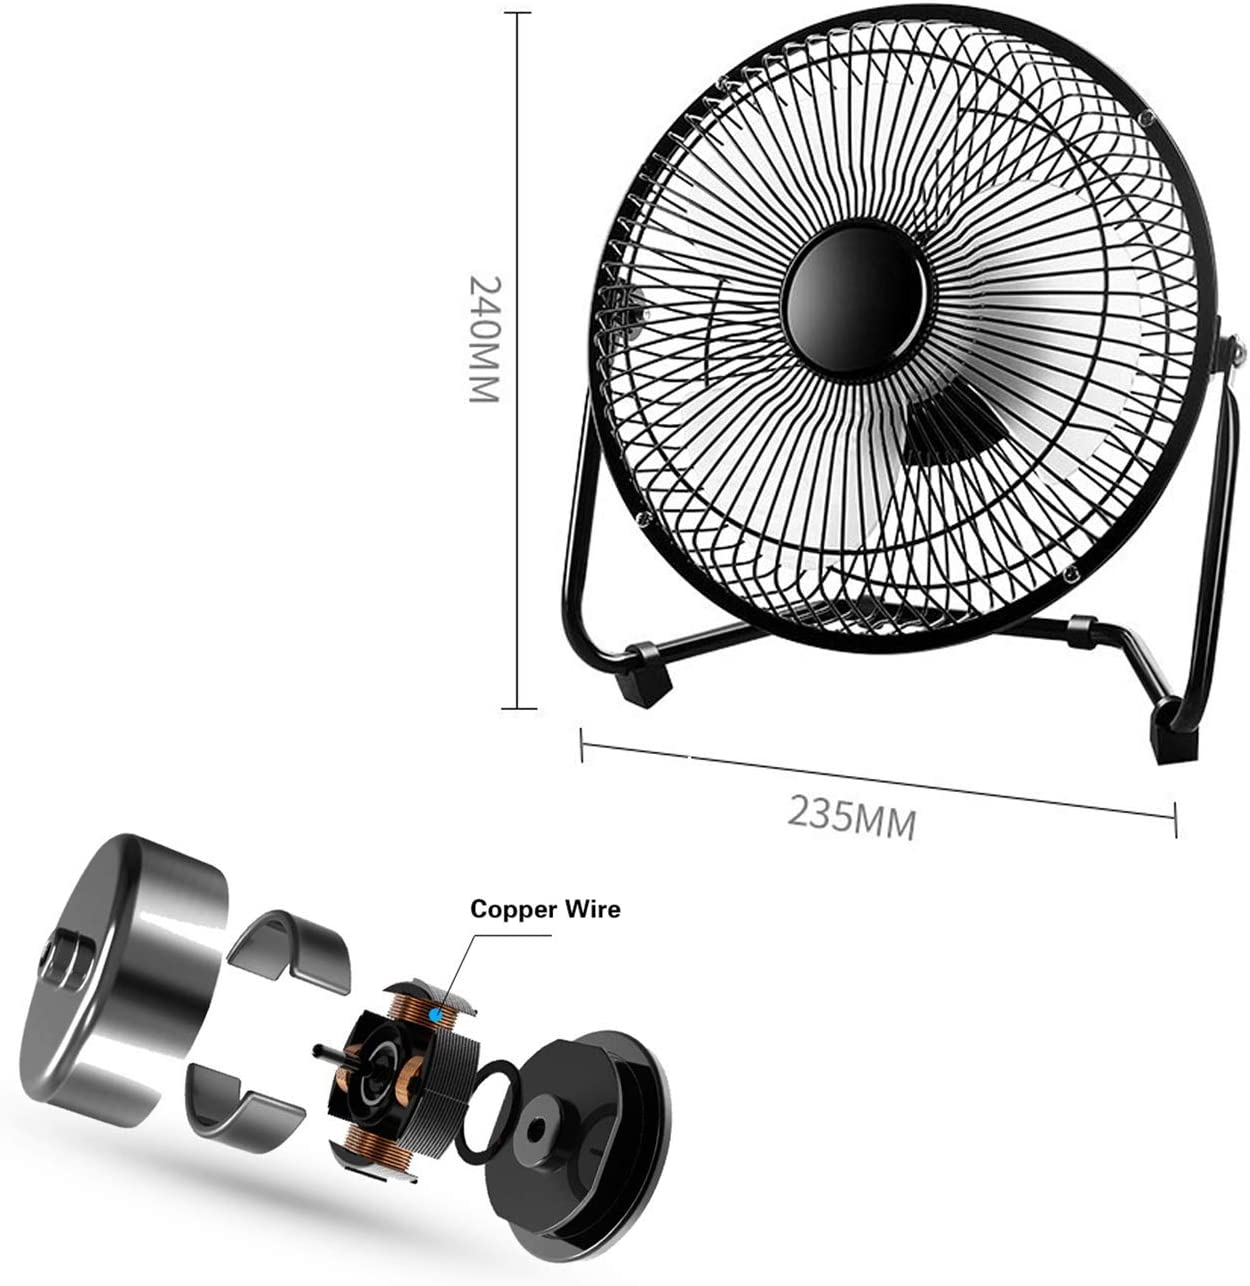 Fan Silent Wrought Iron USB Cable Desktop Personal Mini Metal Shell 8 Inch 360 Degree Rotating Fan High Compatibility Natural Wind Fan Color : Black